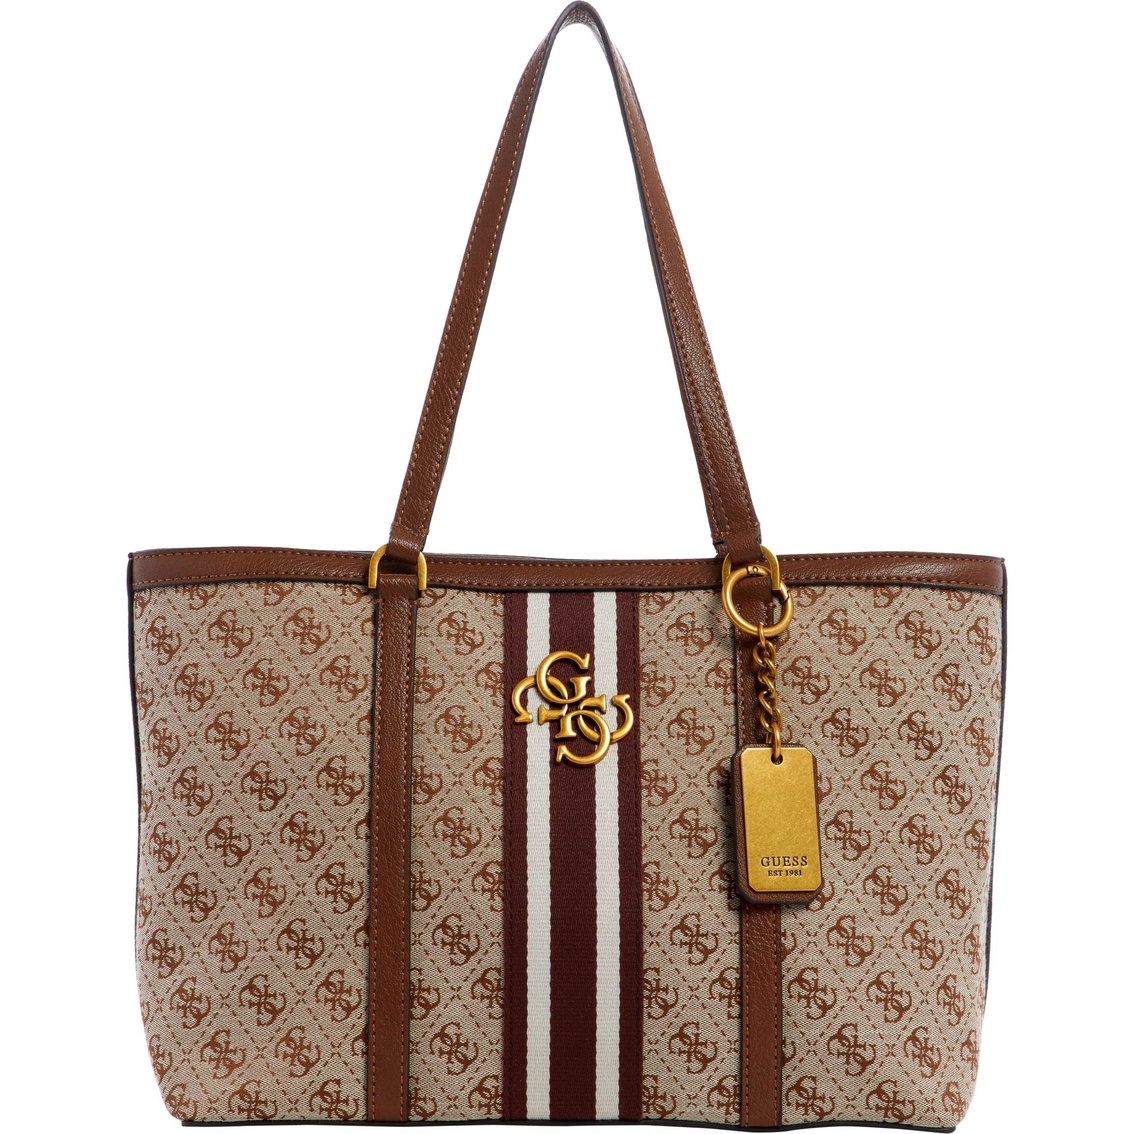 Guess Vintage Tote | Totes & Shoppers | Handbags